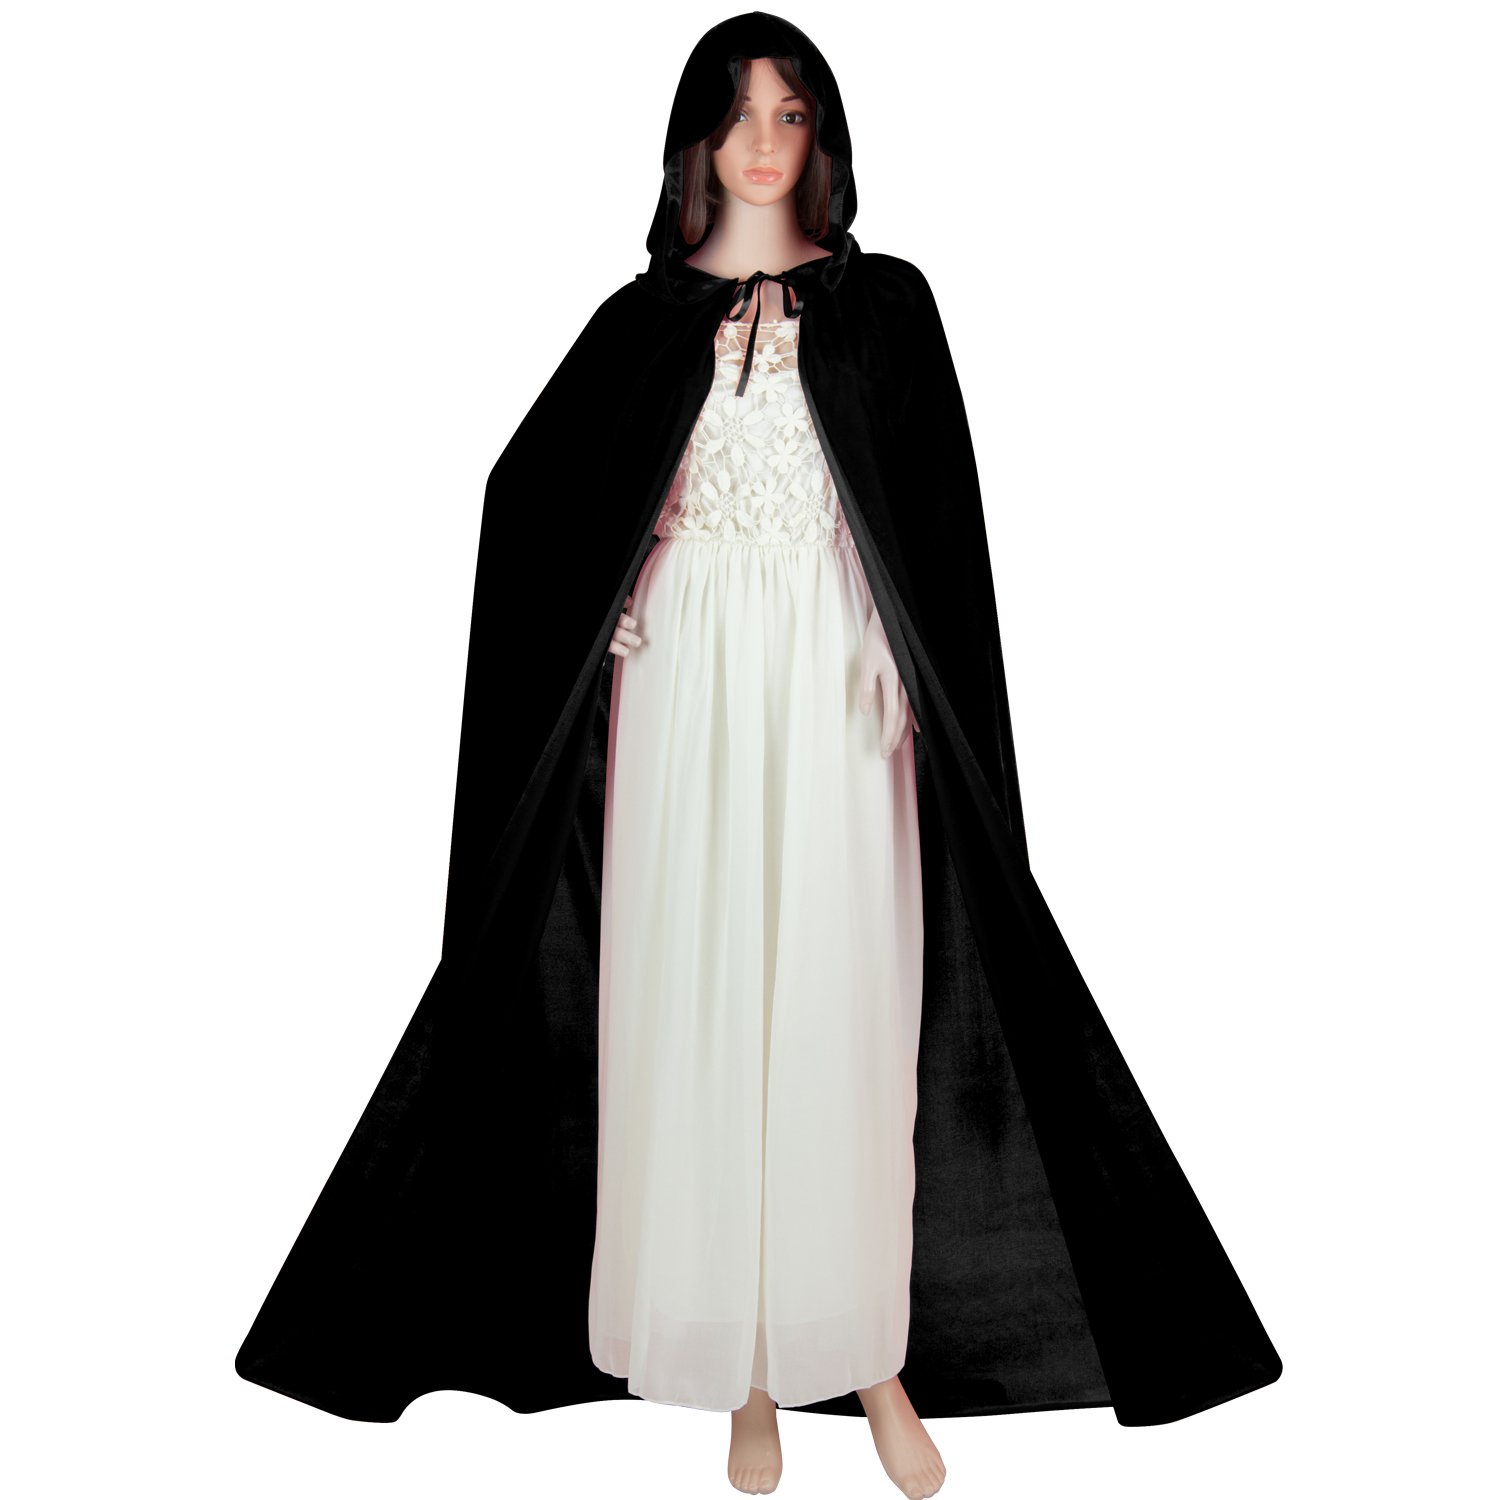 Victorian Inspired Womens Clothing Hooded Cape Acecharming Medieval Style Floor Length Adults Velvet Cosplay Cloak with Hood for Devil Witch Wizard Magician $20.99 AT vintagedancer.com